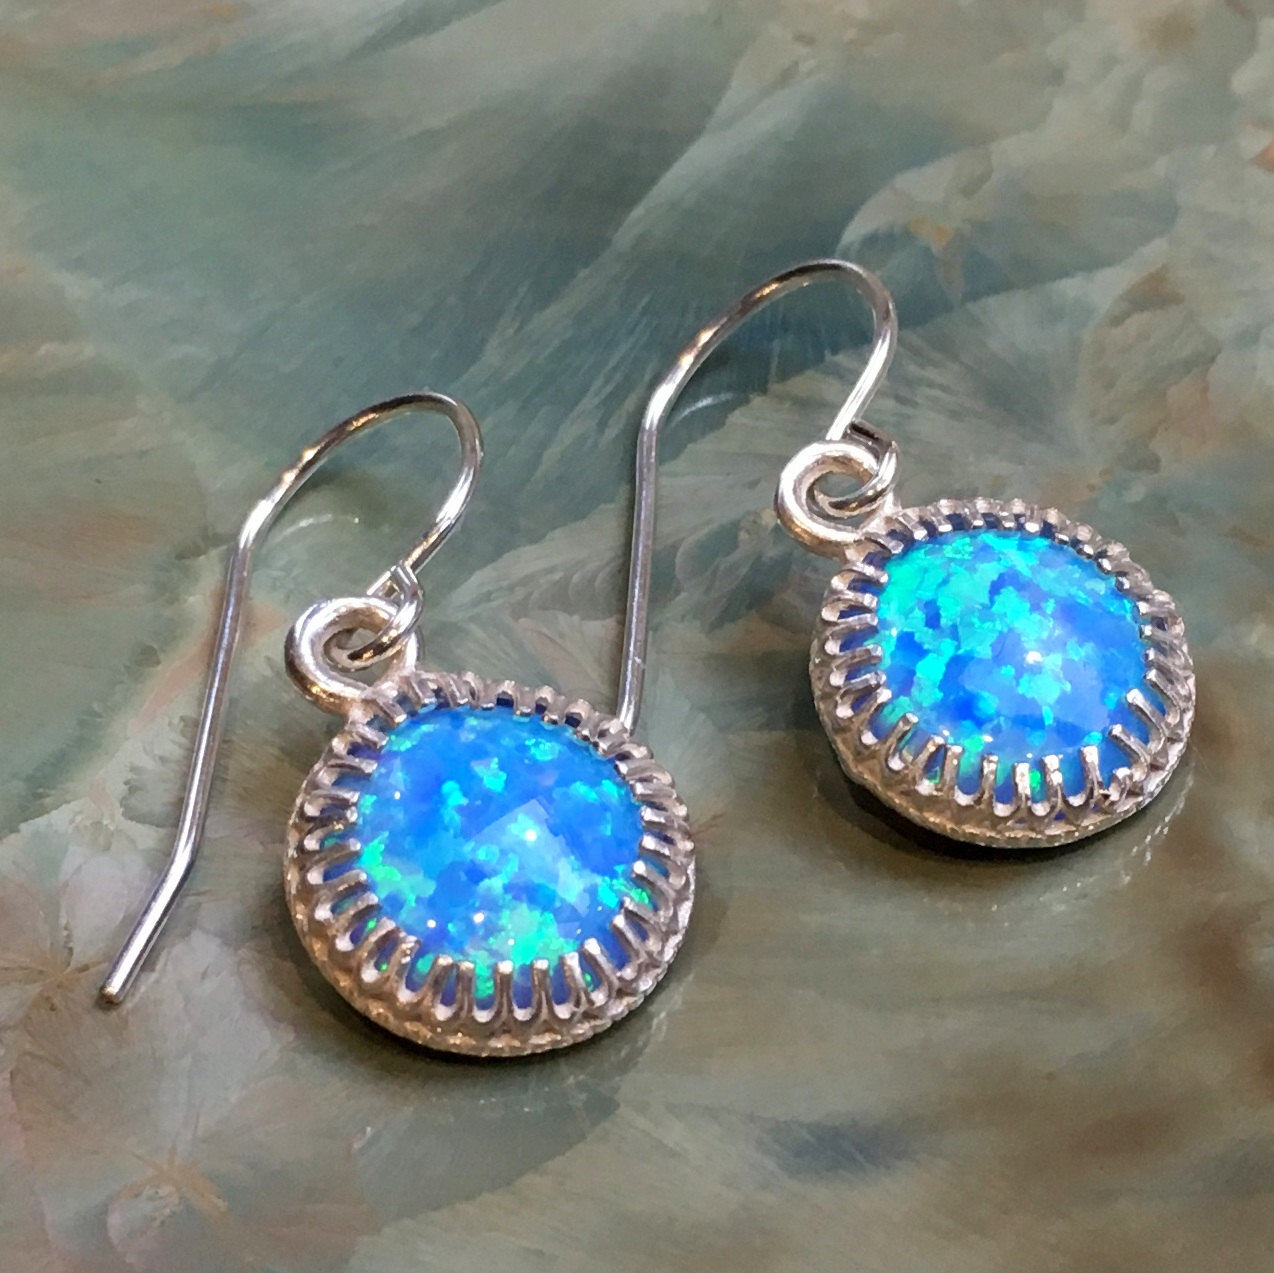 Silver opal earrings, blue stone earrings, crown earrings,boho Dangle earrings, casual earrings, Small gemstone earrings - A Spark E8060